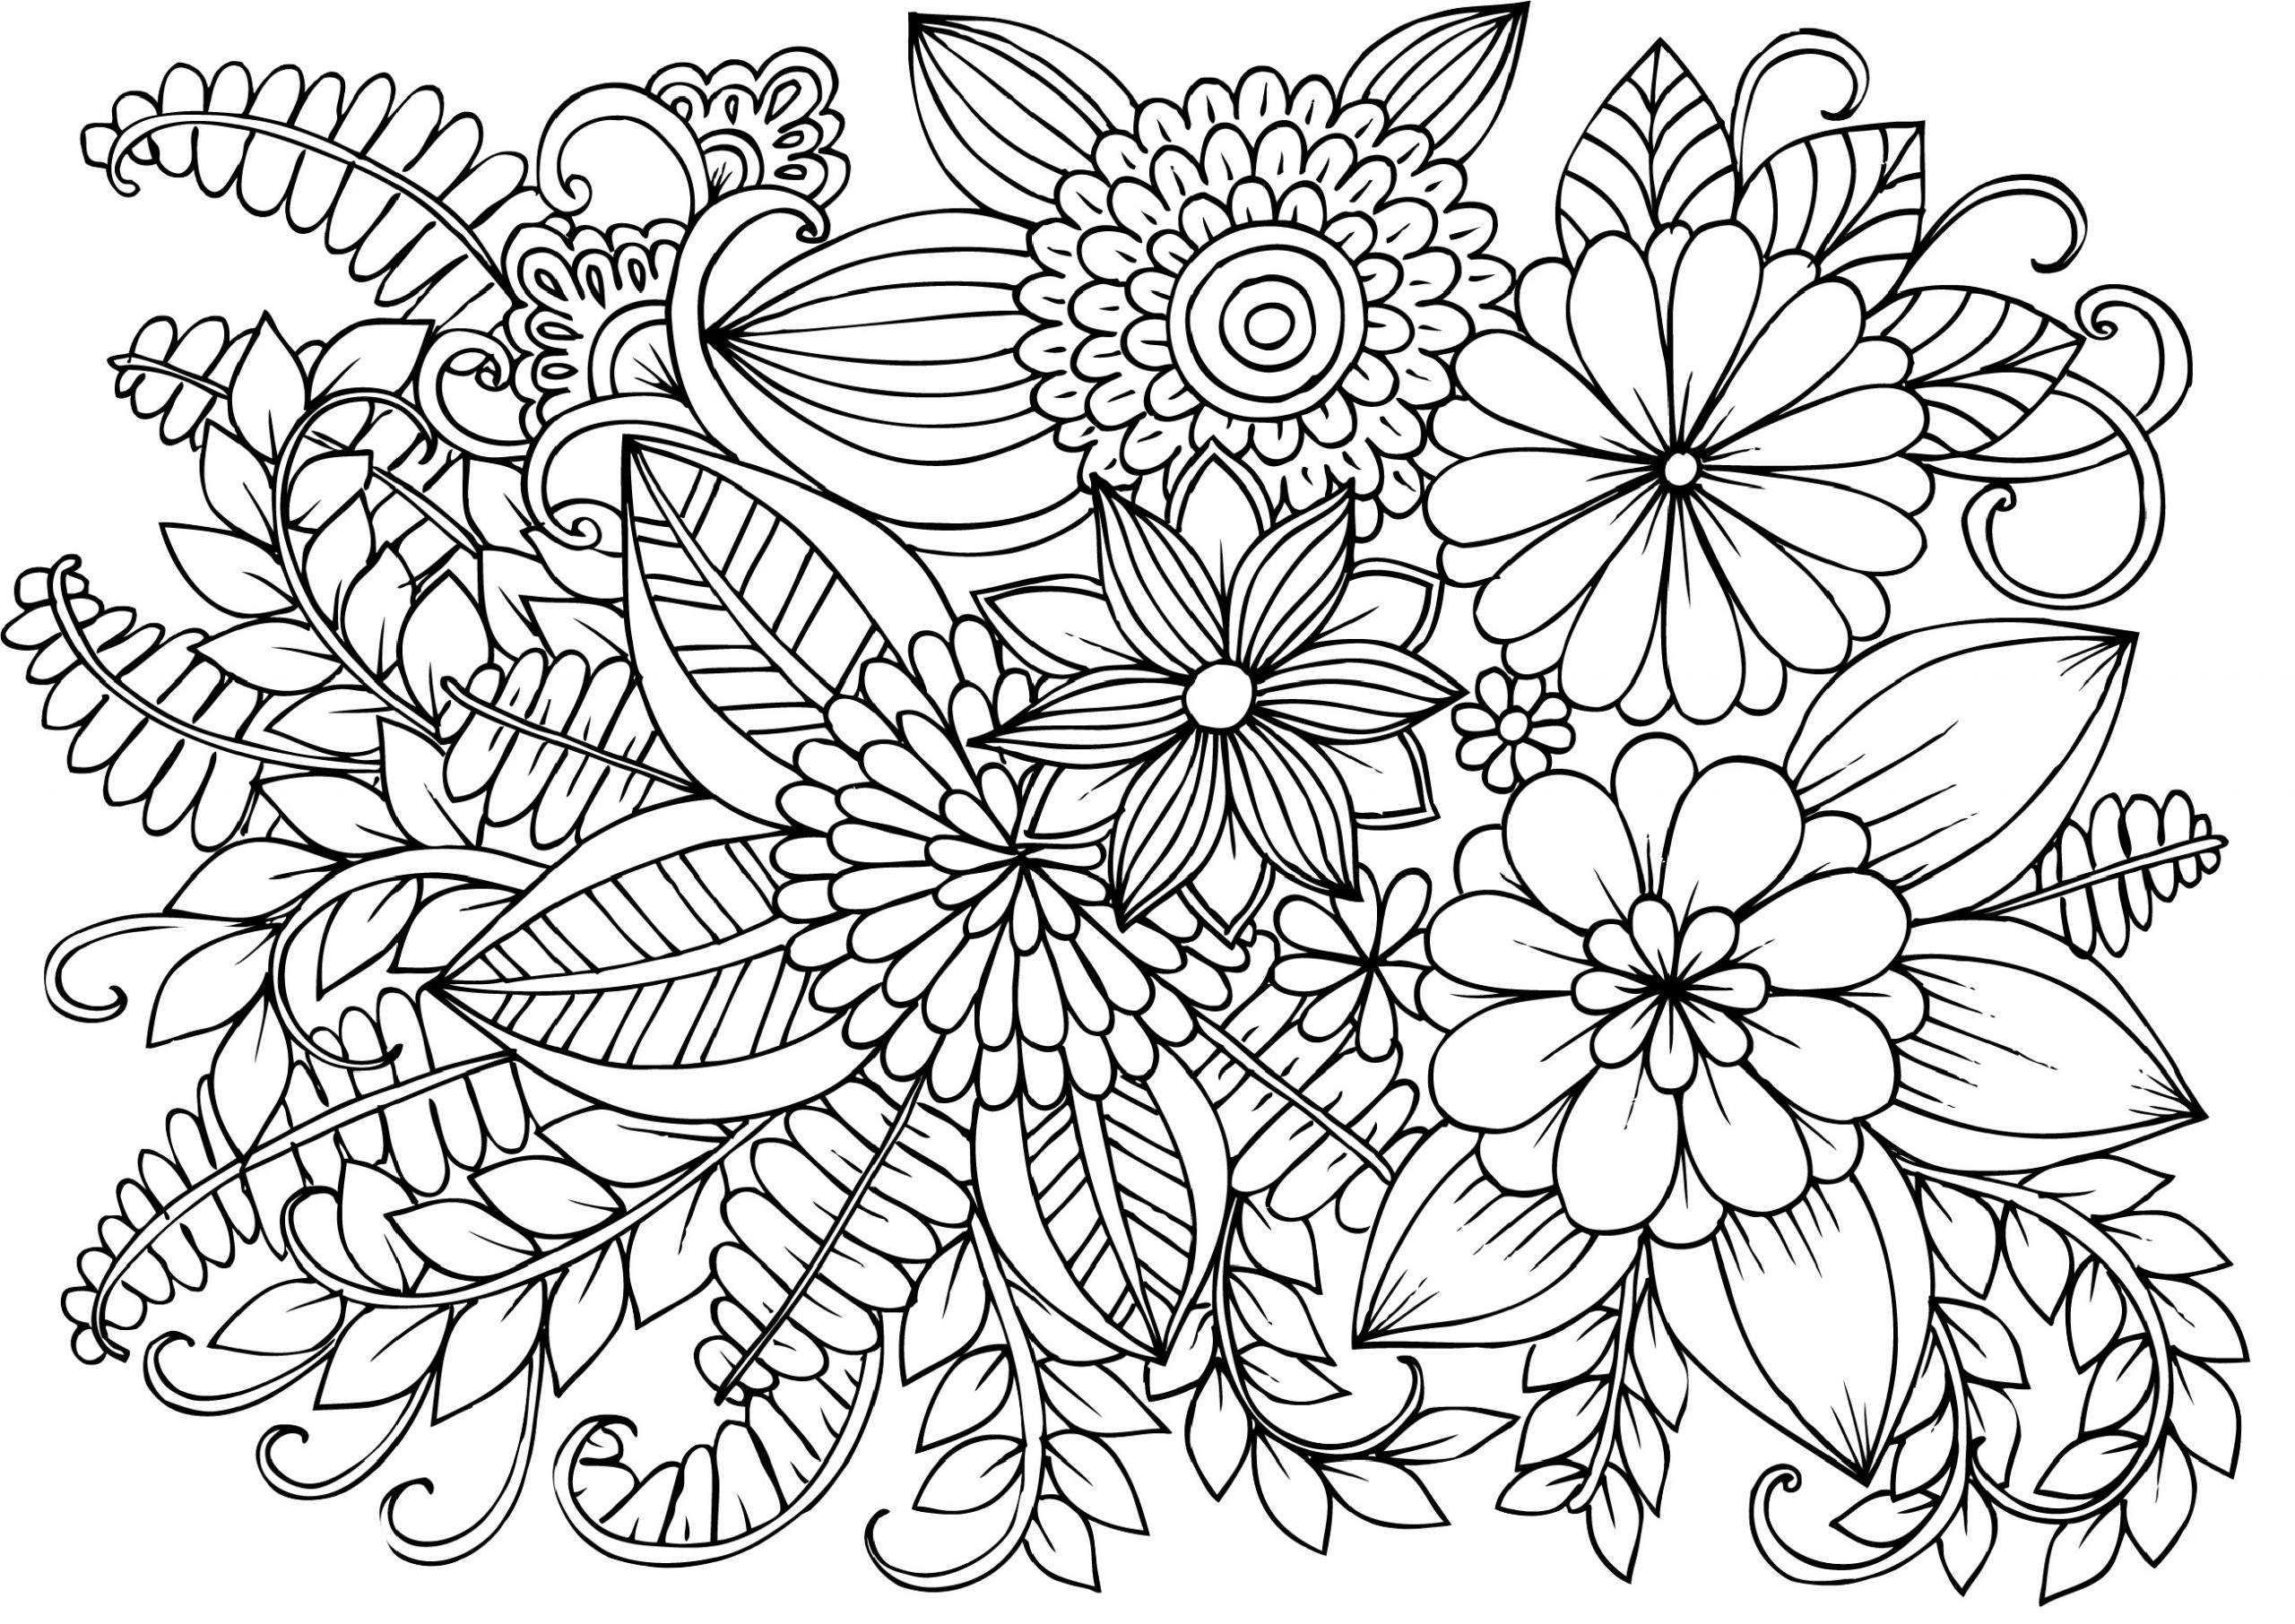 printable coloring pages for adults flowers pin by muhammad azeem on muhammad azeem flower coloring printable for coloring adults pages flowers